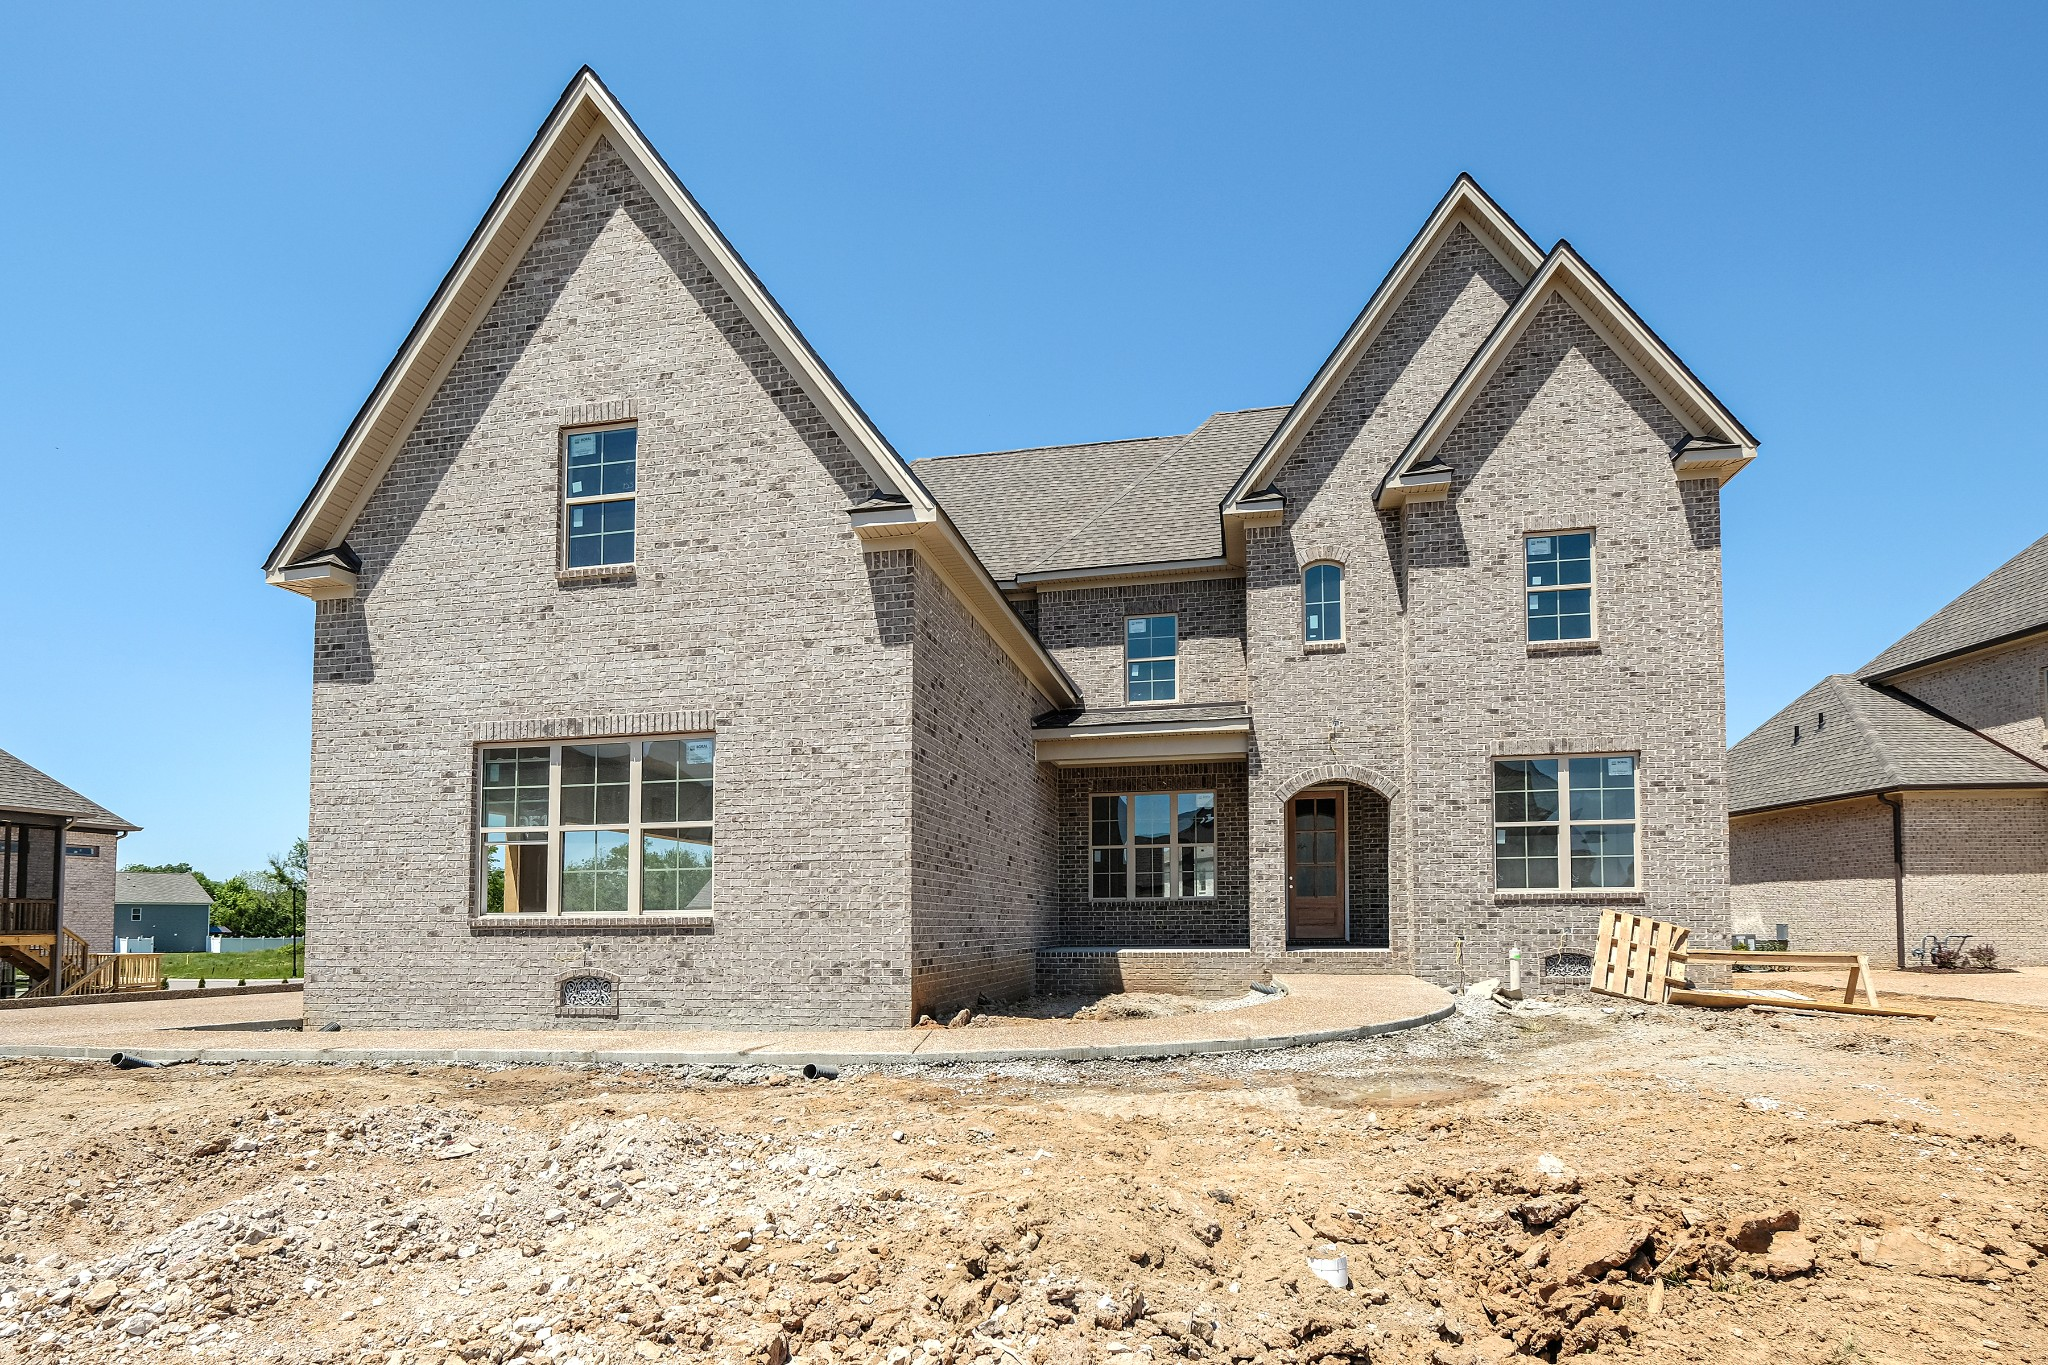 6028 Trout Ln (Lot 251), Spring Hill, Tennessee